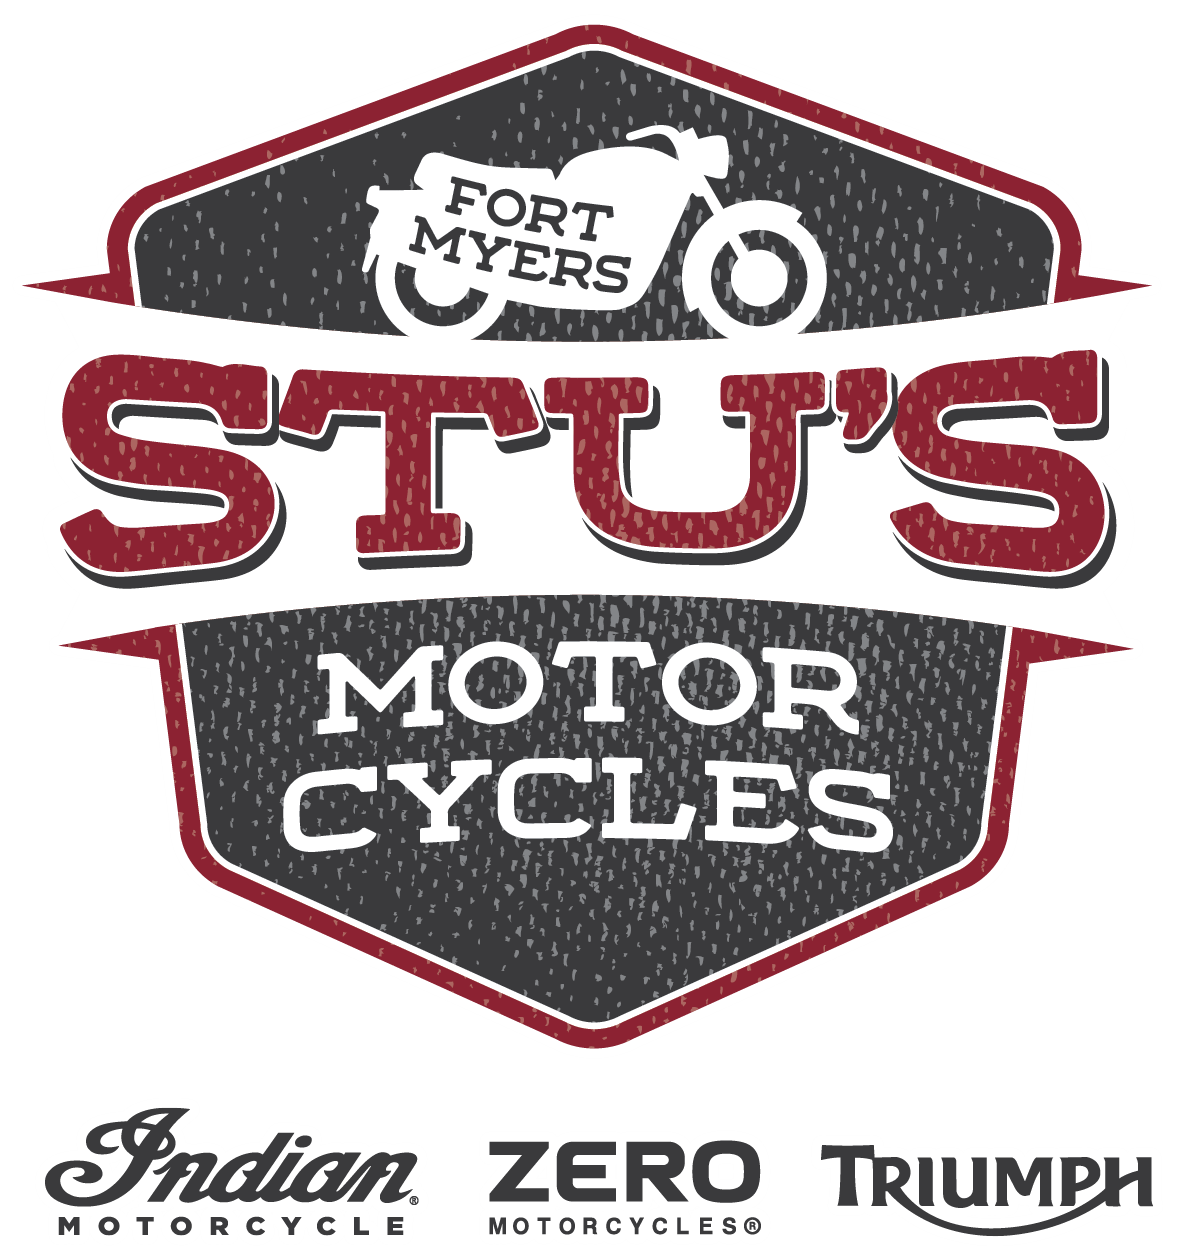 Stu's Motorcycles of Fort Myers